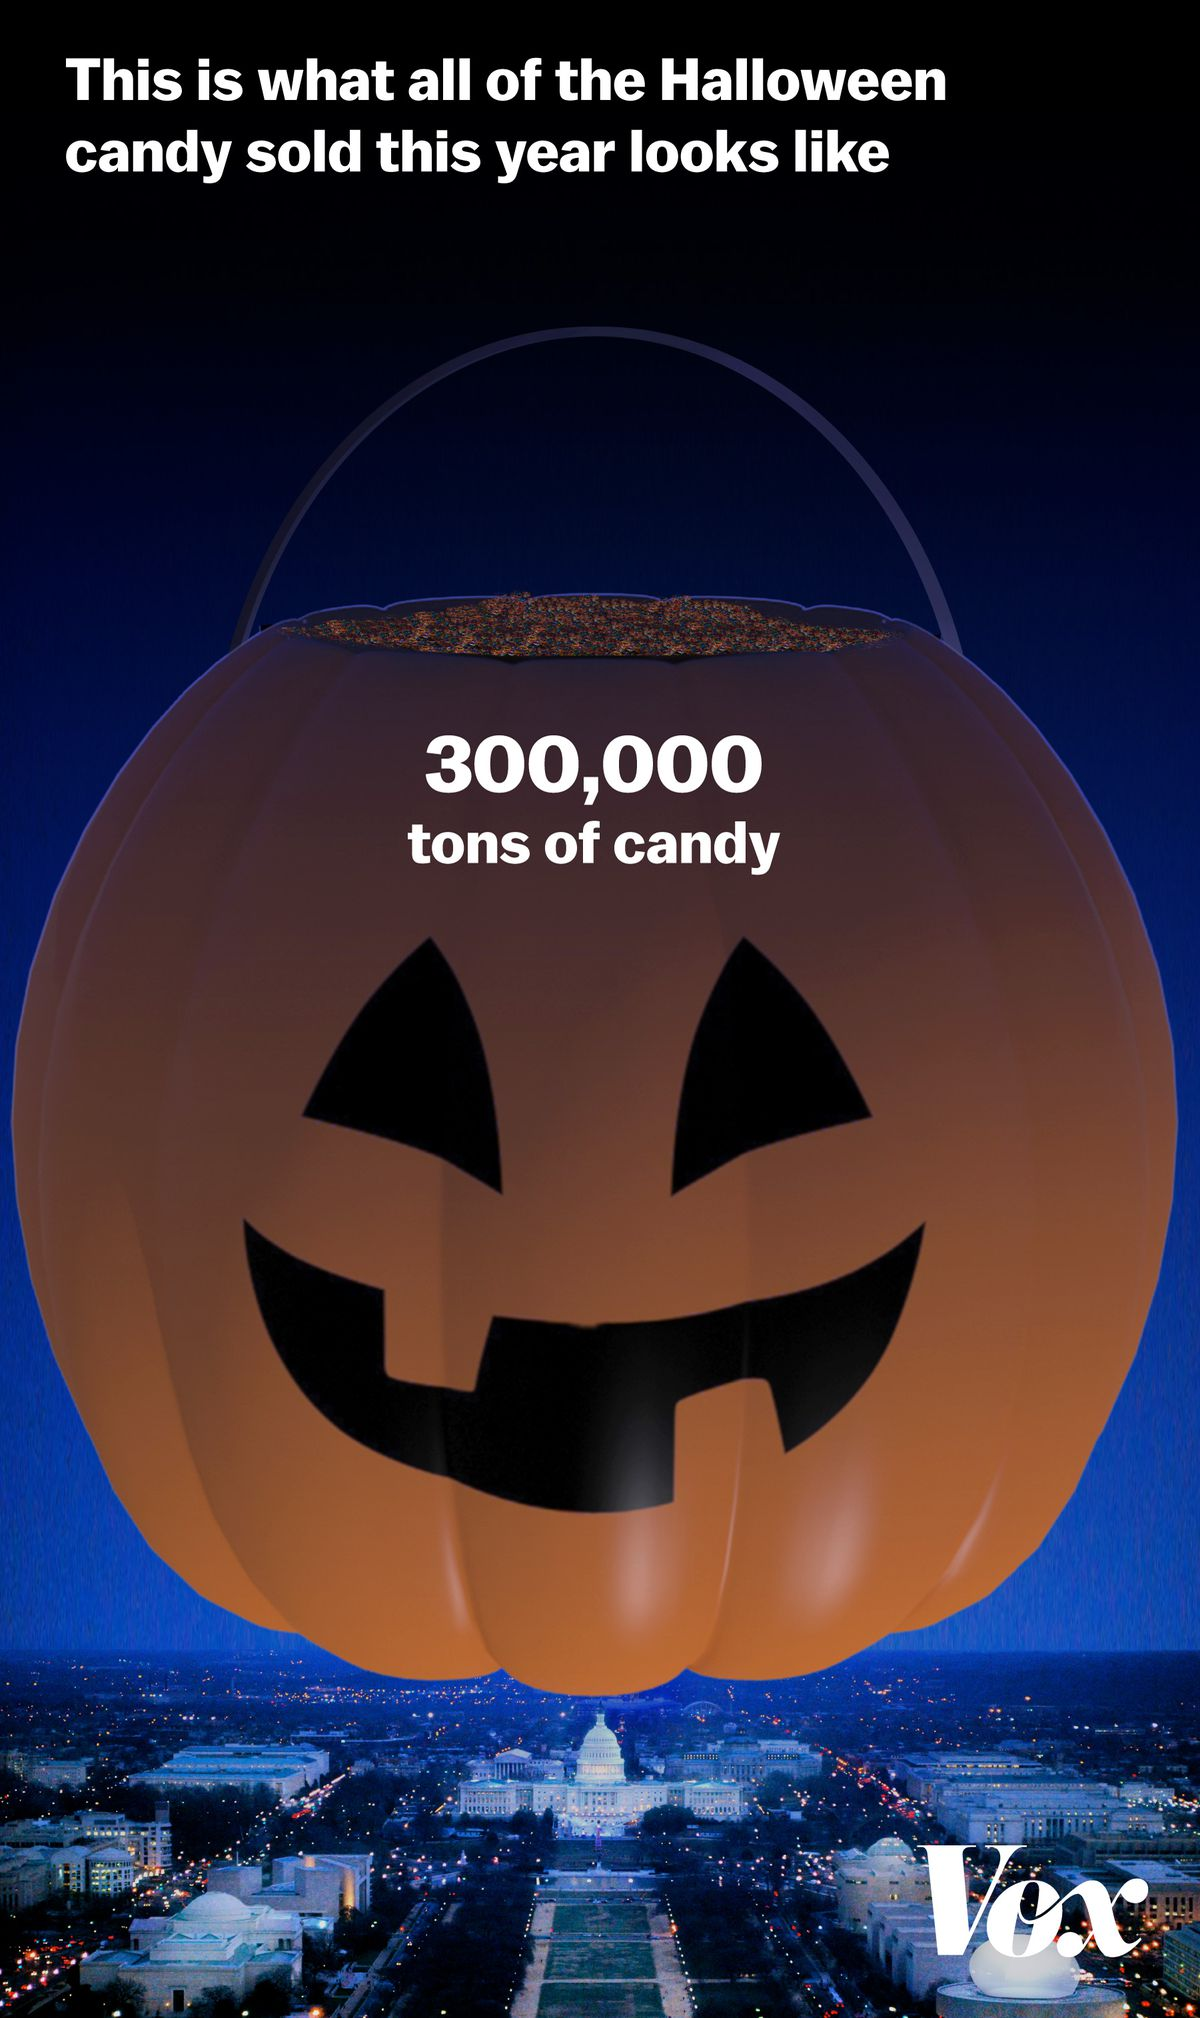 all the candy that's sold during halloween week, in one massive